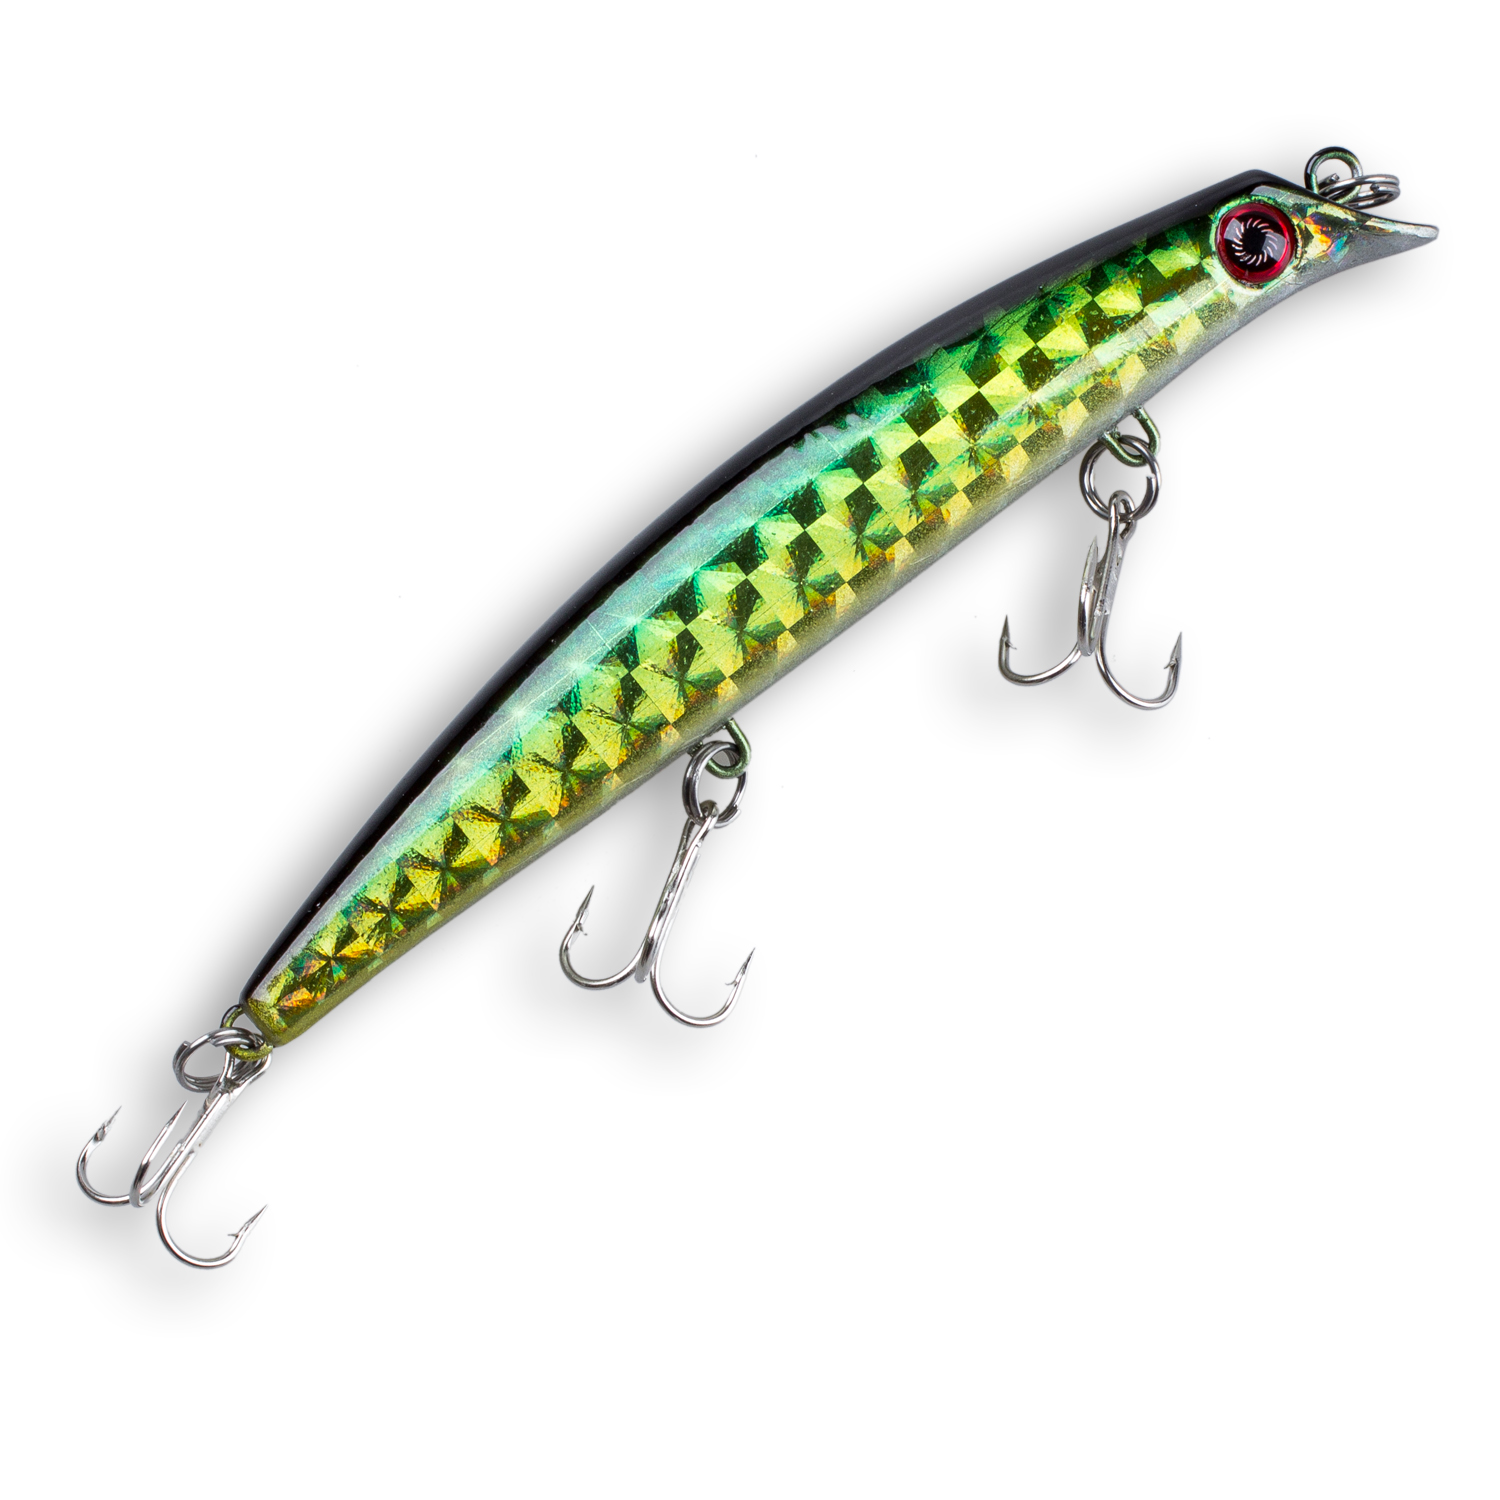 3D Eyes Crank bait Minnow Fishing Hard Lure 12cm / 15g 3 Treble Hooks Diving 0.5-1.5m(gr ...